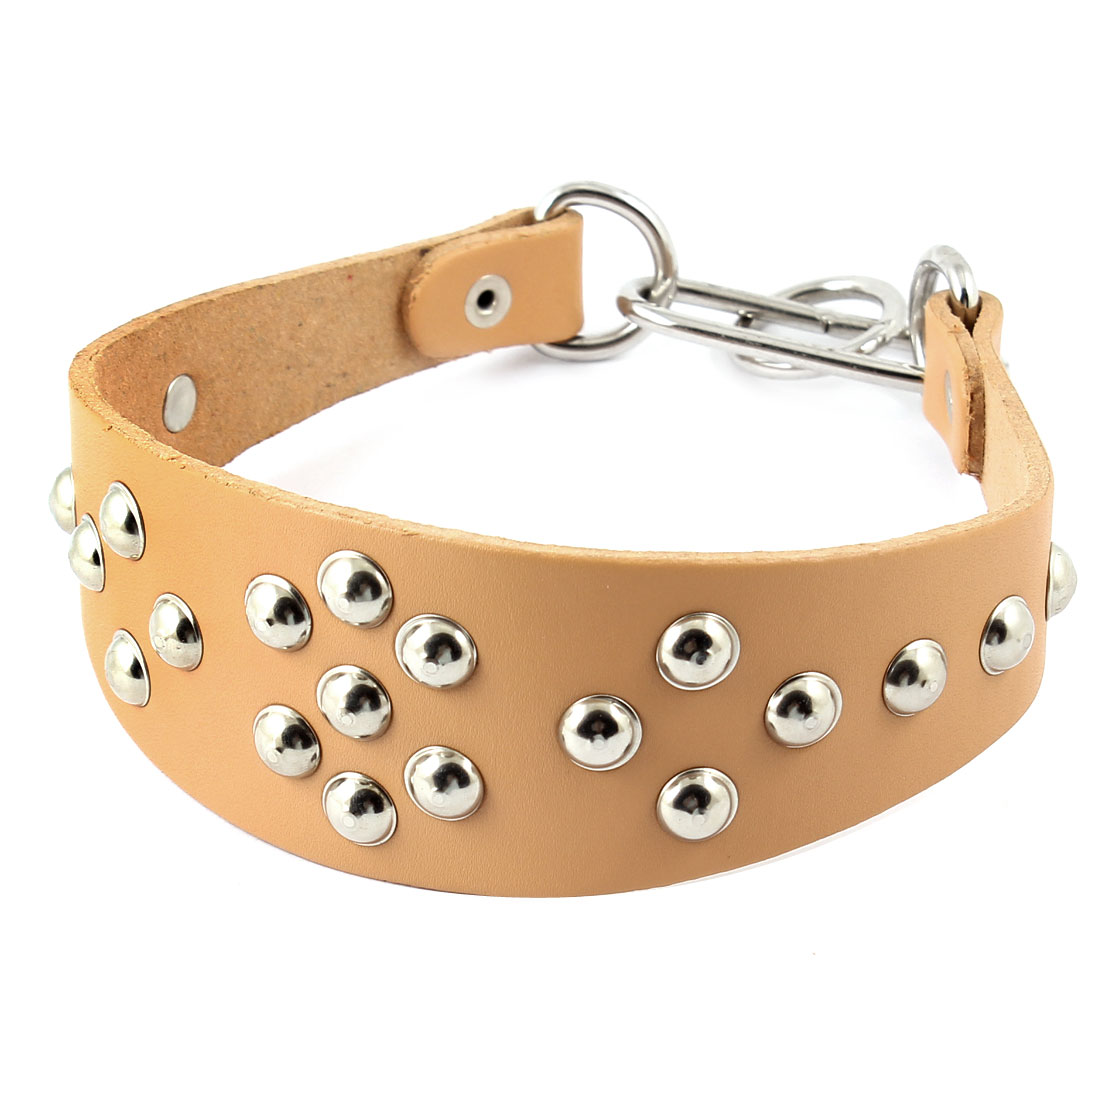 Mushroom Nail Accent Brown 5cm Width Adjustable 36-45cm Girth Dog Cat Pet Collar